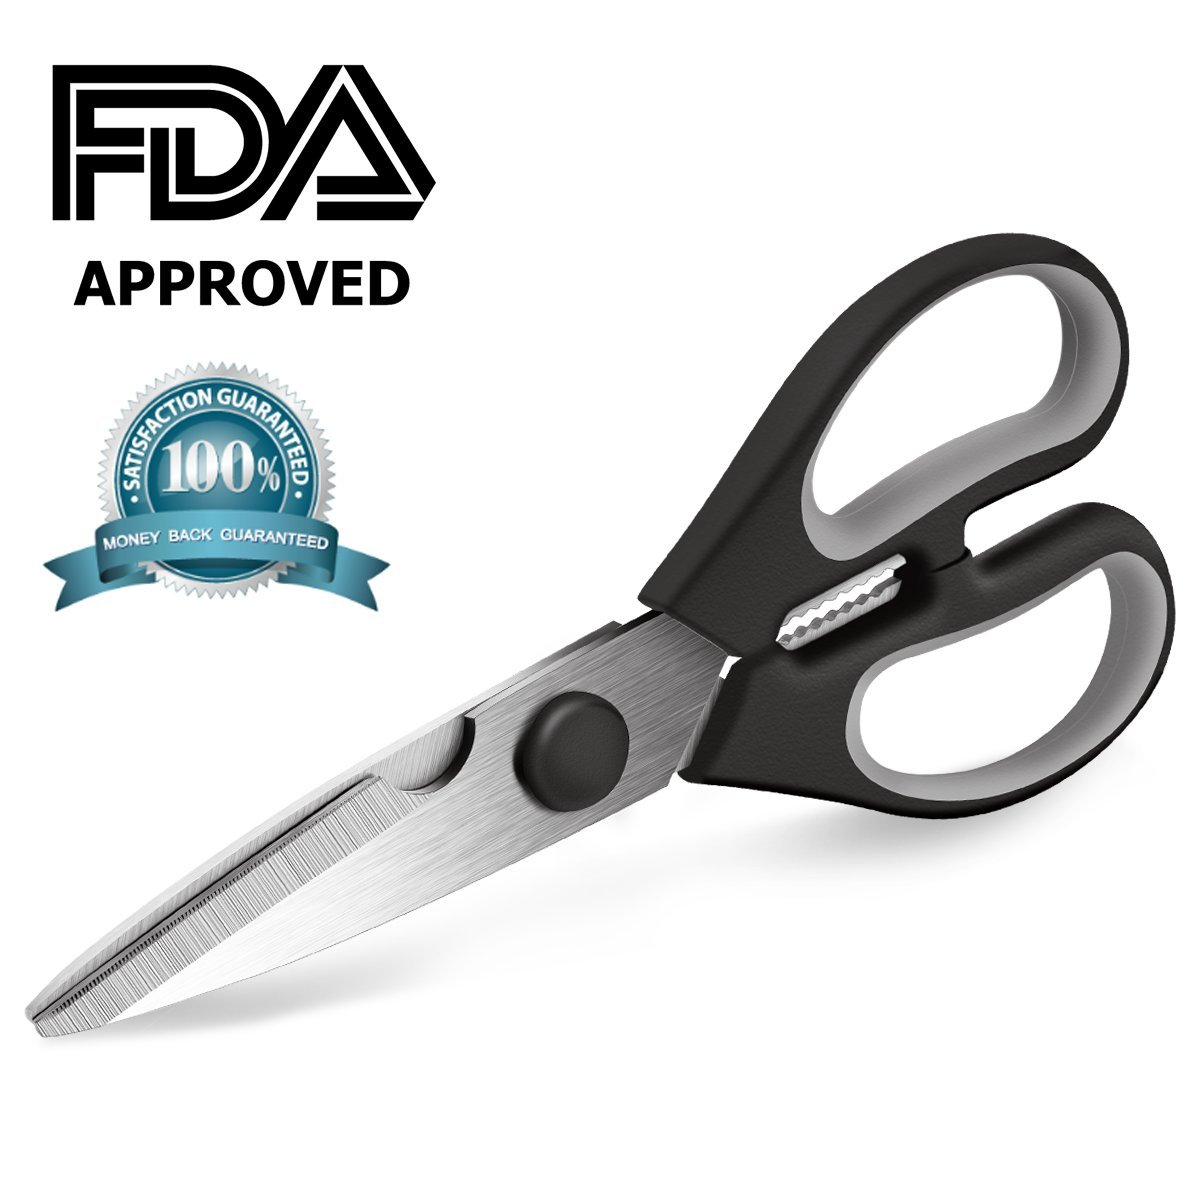 Kitchen Scissors Black, Ultra Sharp Multi-functional Kitchen Shears Come Apart Heavy Duty Non-slip Handle Shears for Cutting Meat, Poultry, Fish, Vegetable